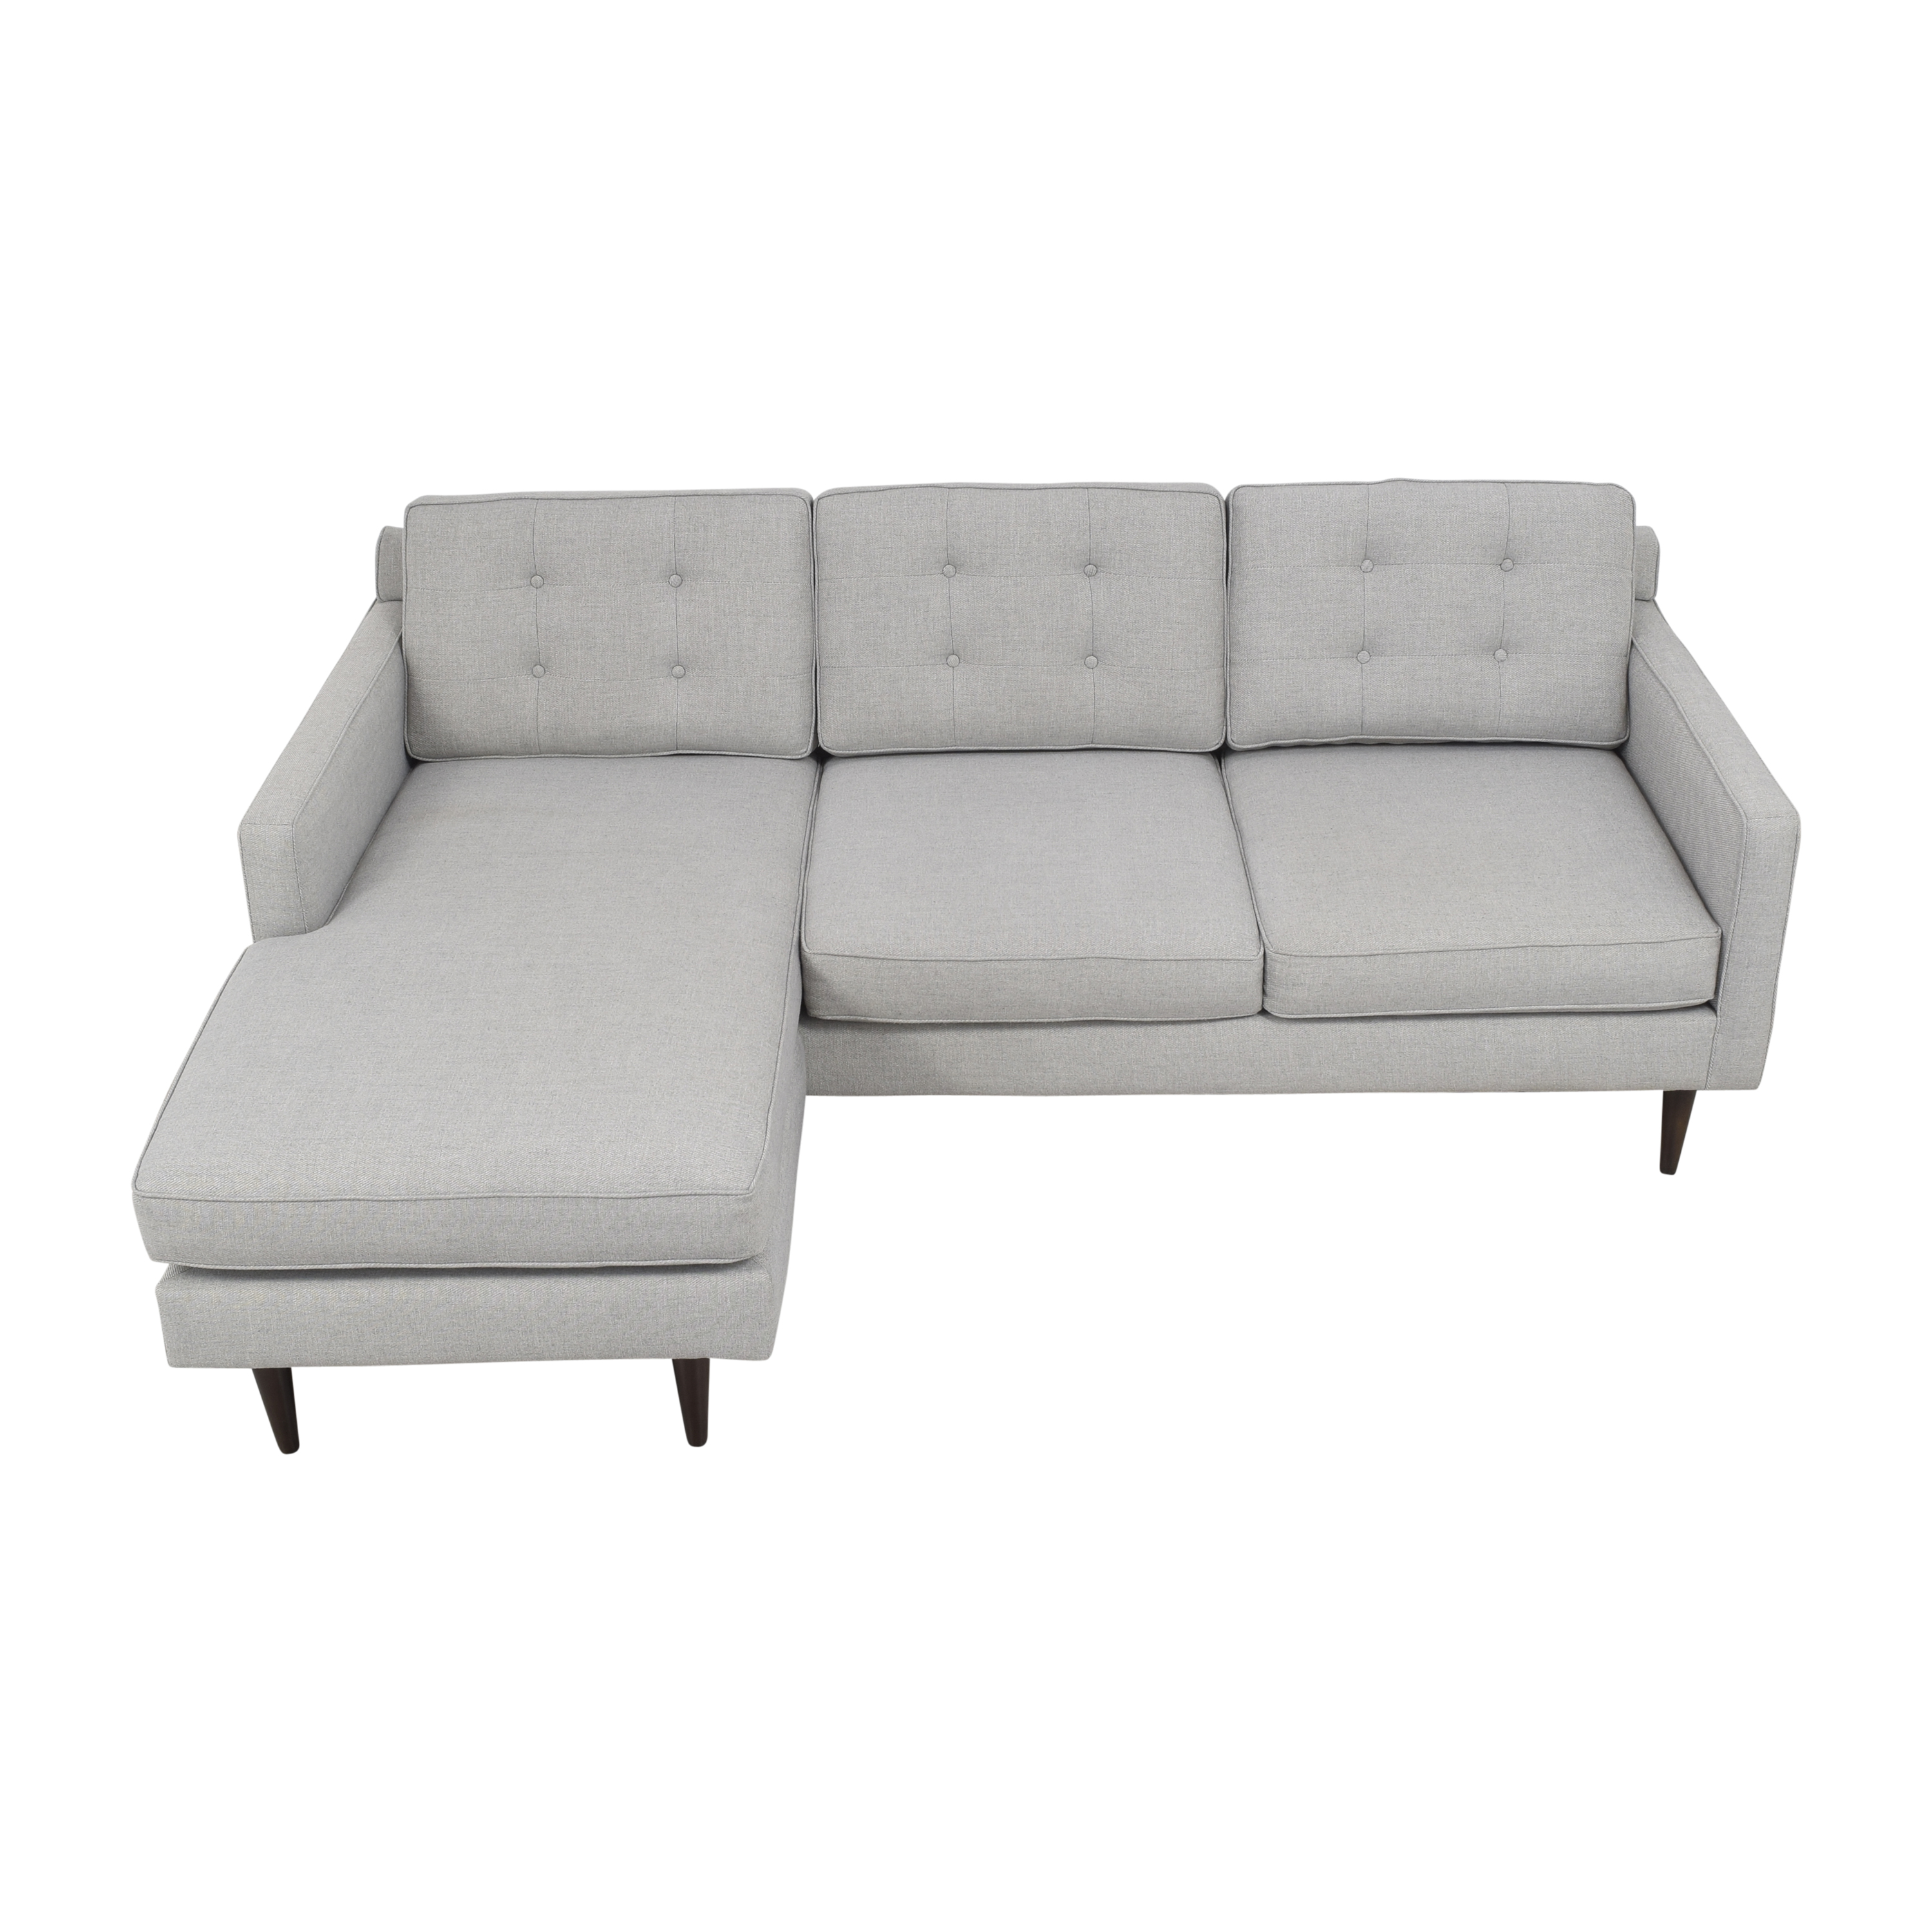 West Elm West Elm Drake Reversible Chaise Sectional Sofa pa